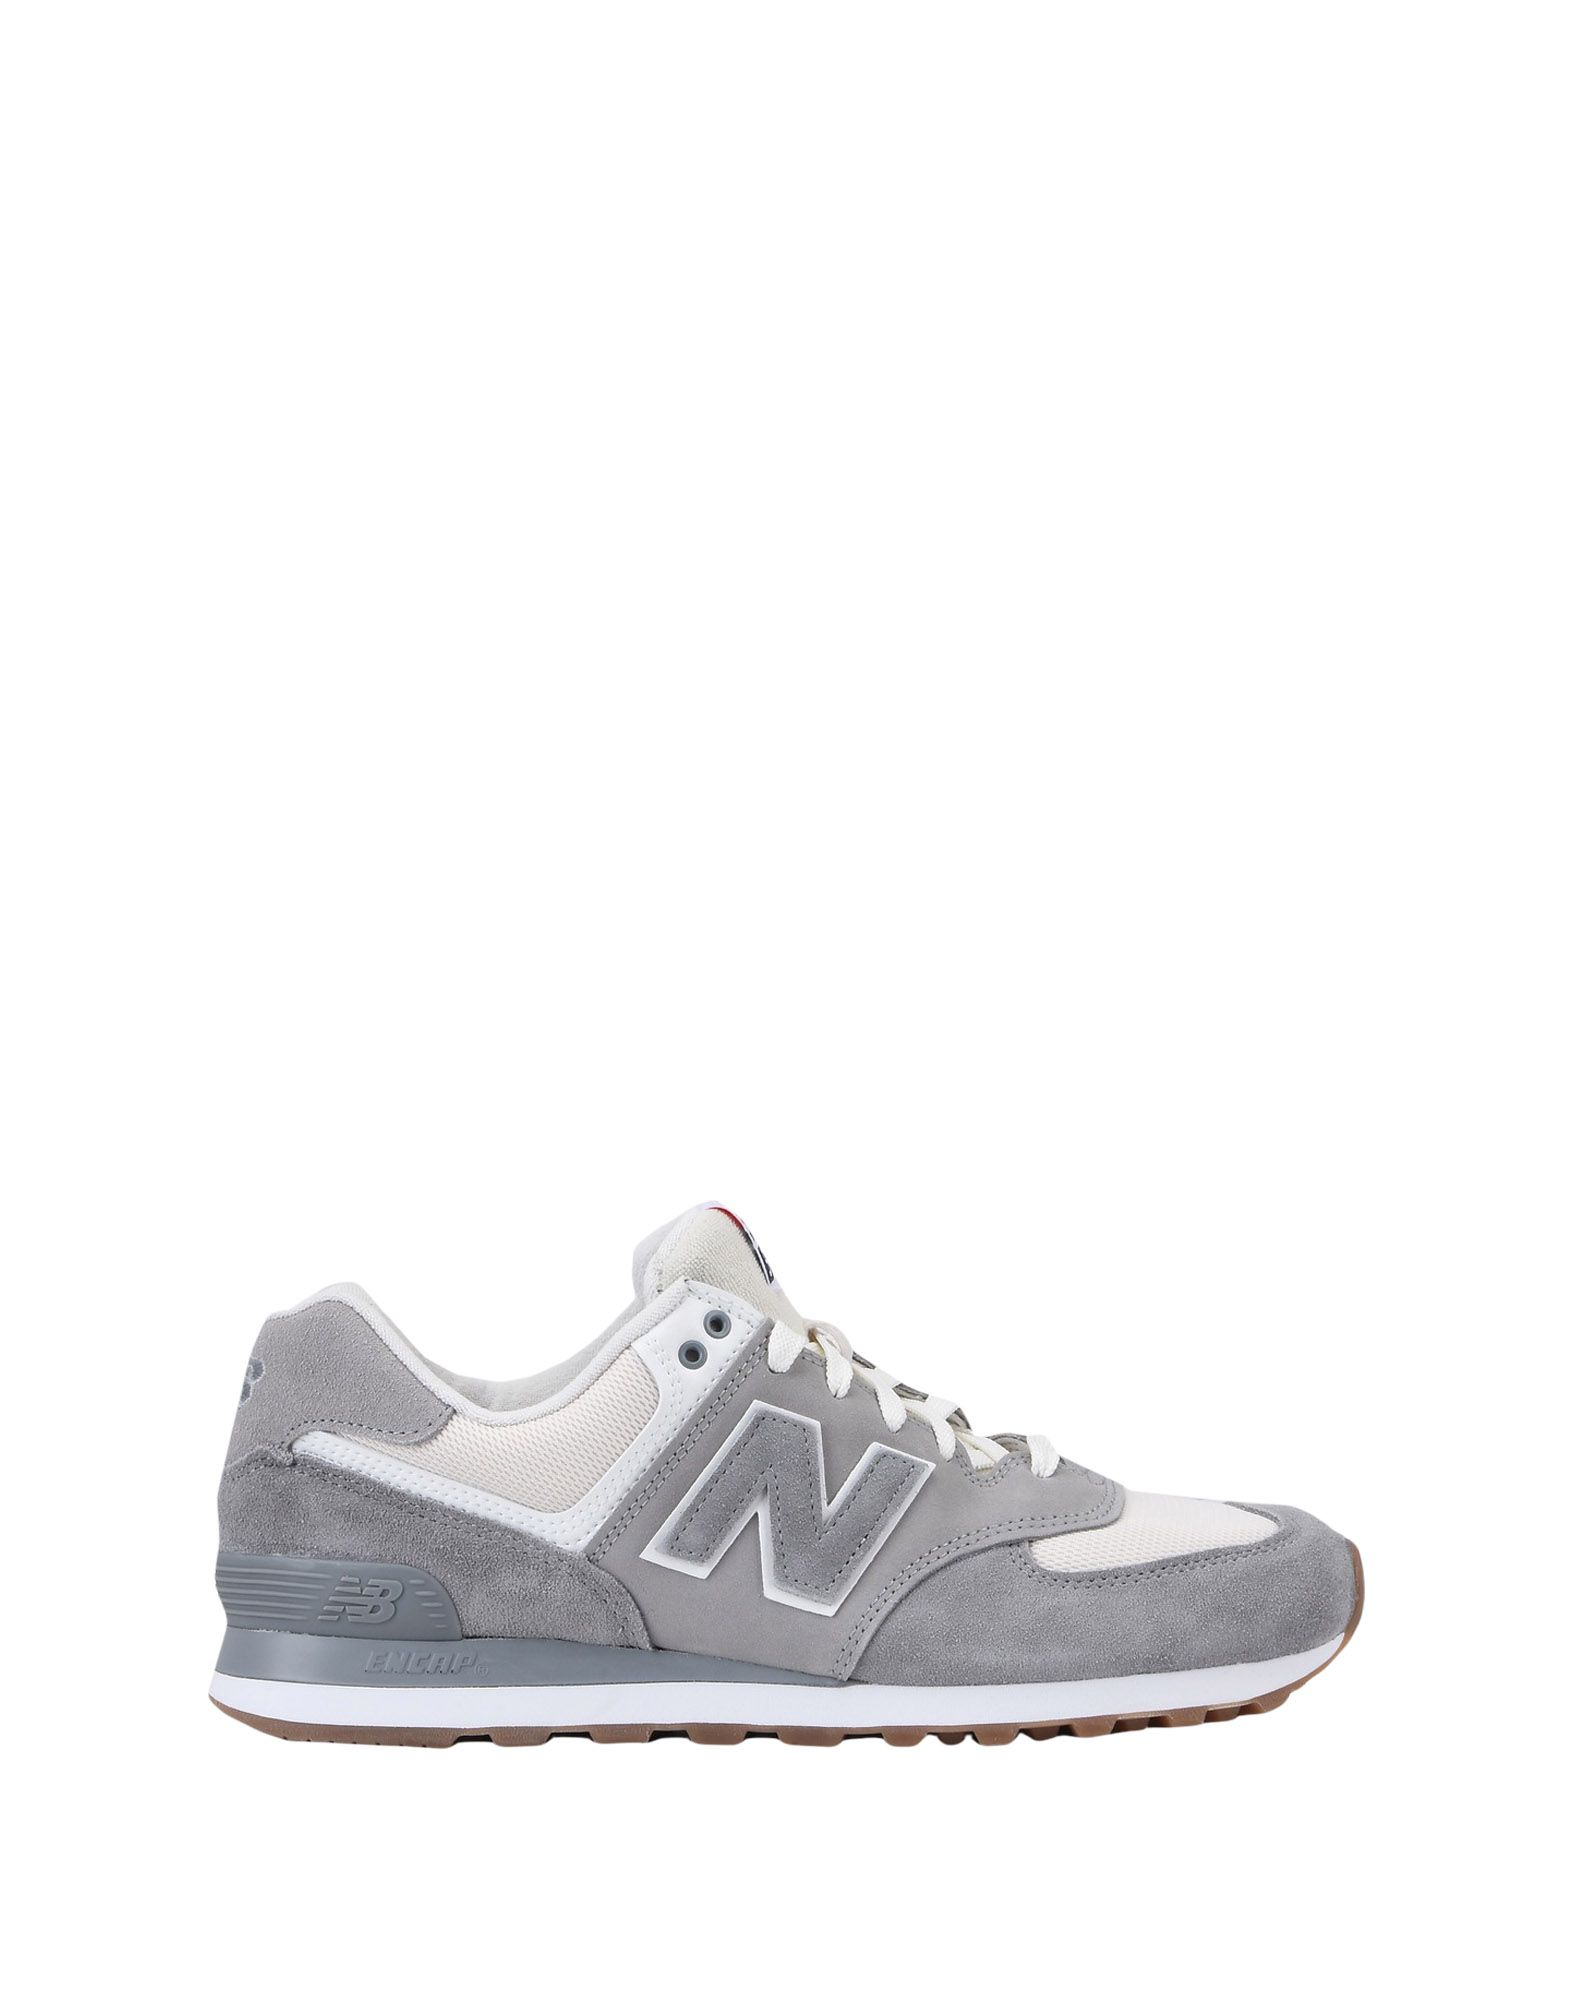 Usa New Balance 574 Summer Usa   11264712RB 478e1f